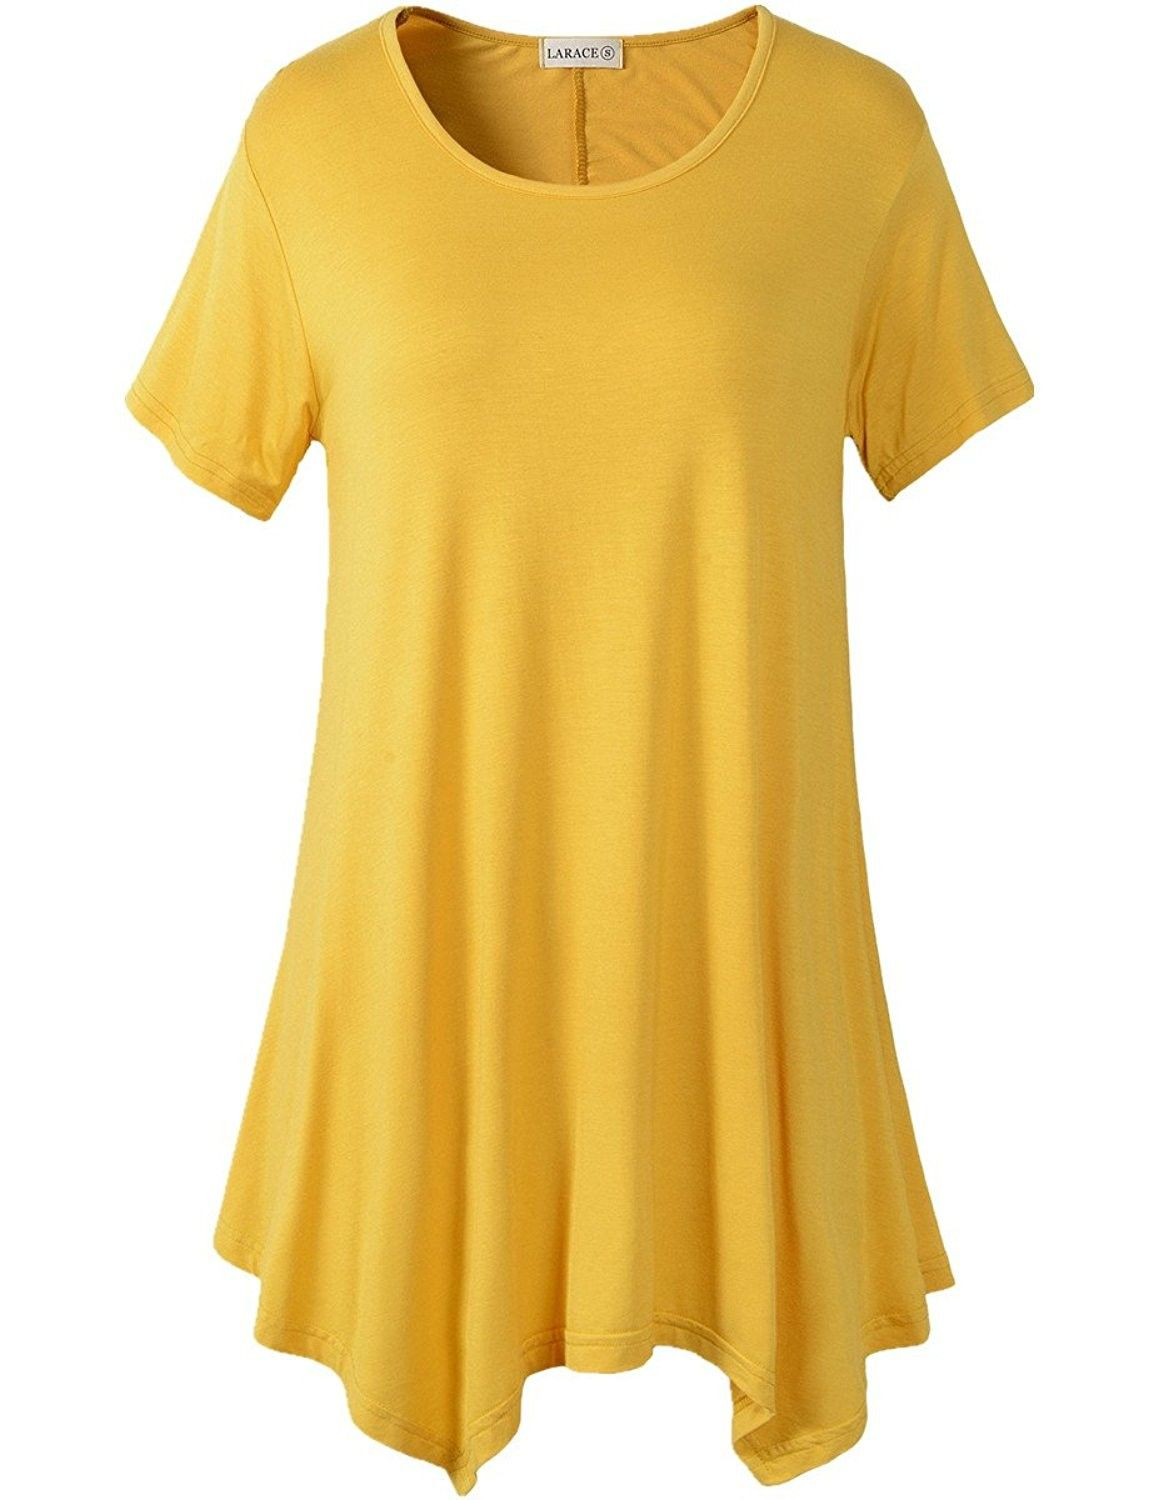 f66df808c3e Women's Clothing, Tops & Tees, Knits & Tees, Womens Swing Tunic Tops Loose  Fit Comfy Flattering T Shirt (XL- Yellow) - CL12LIMDTS5 #women #fashion  #clothing ...